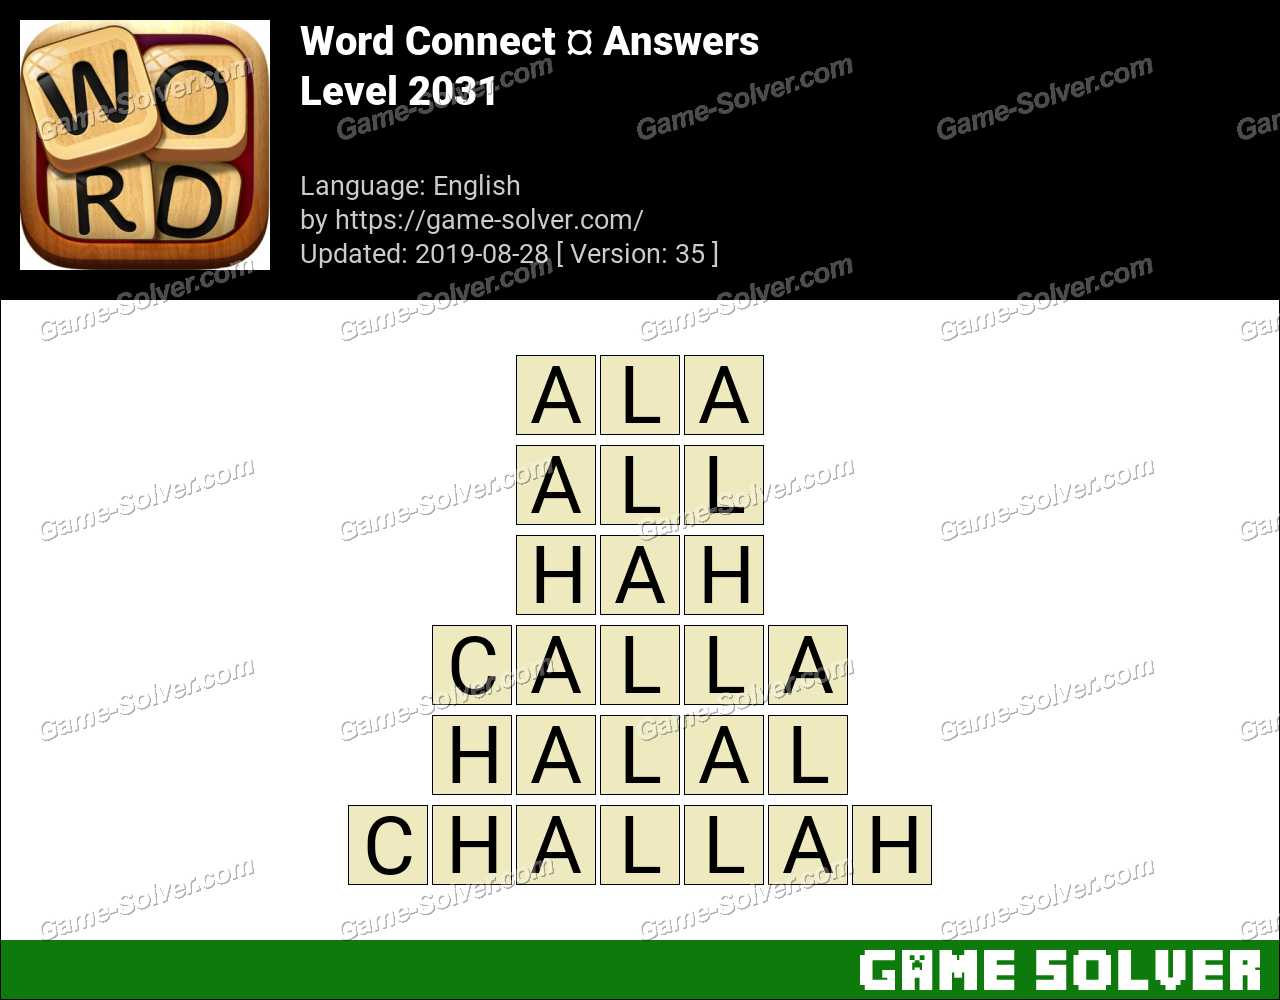 Word Connect Level 2031 Answers